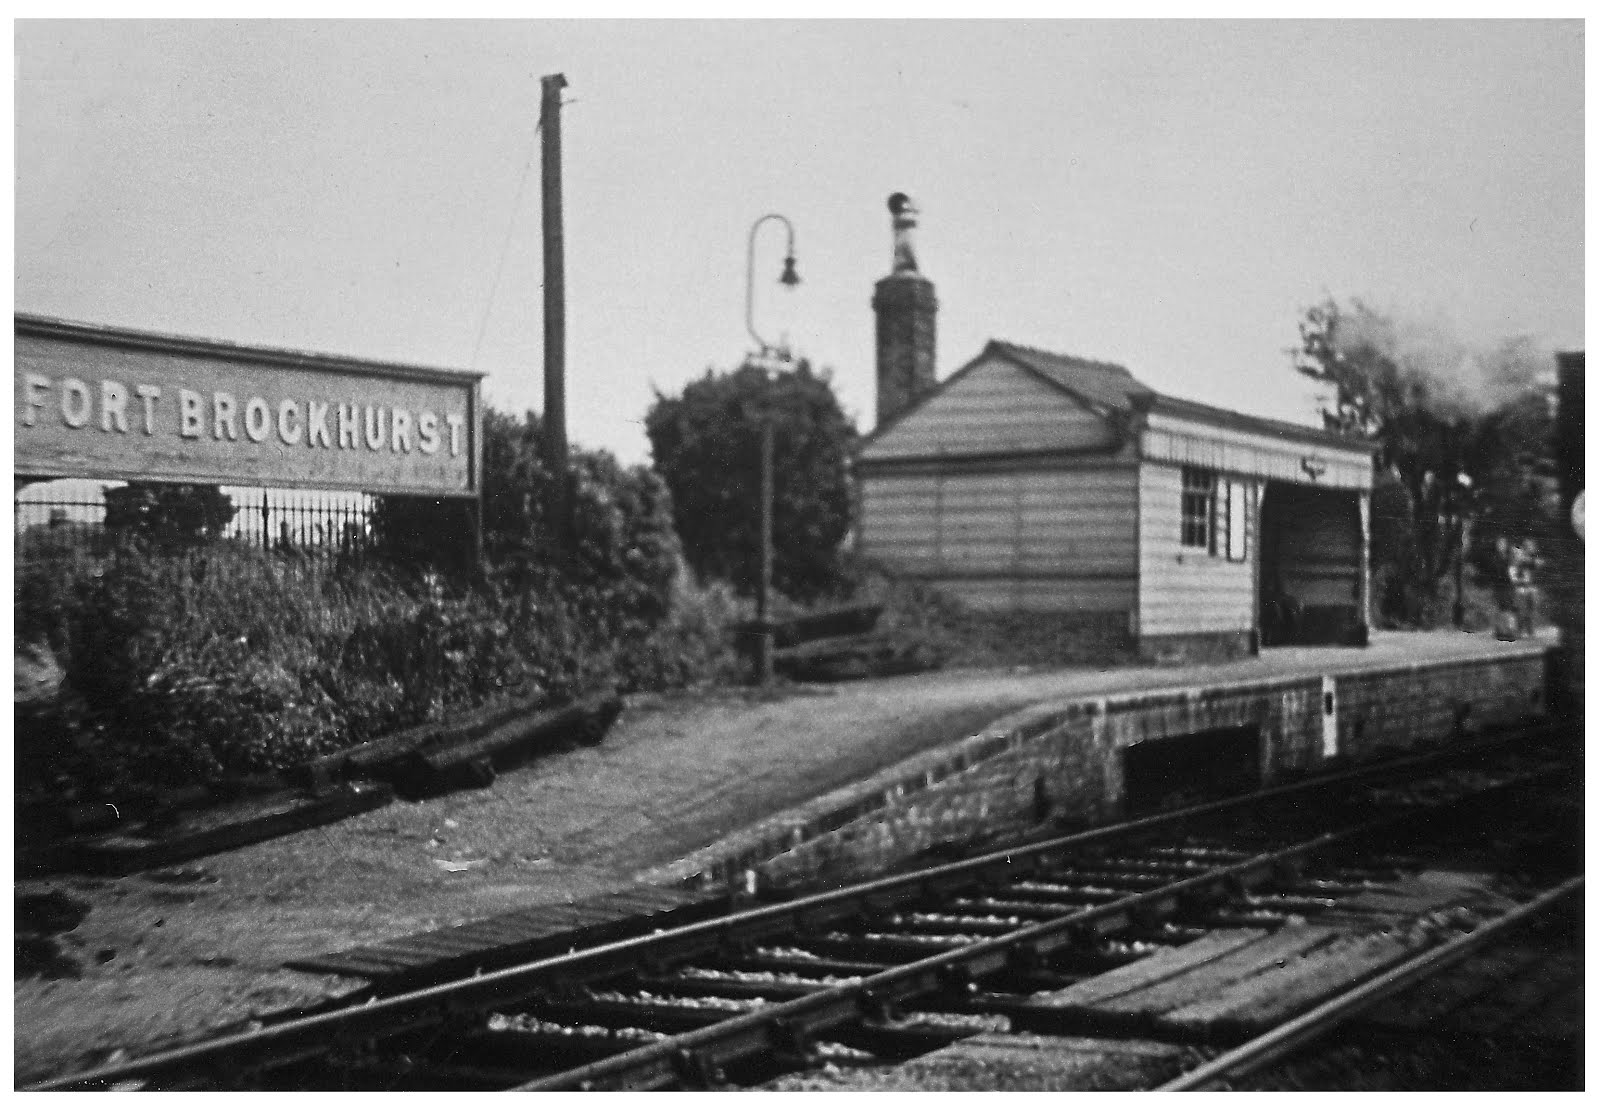 Fort Brockhurst down platform